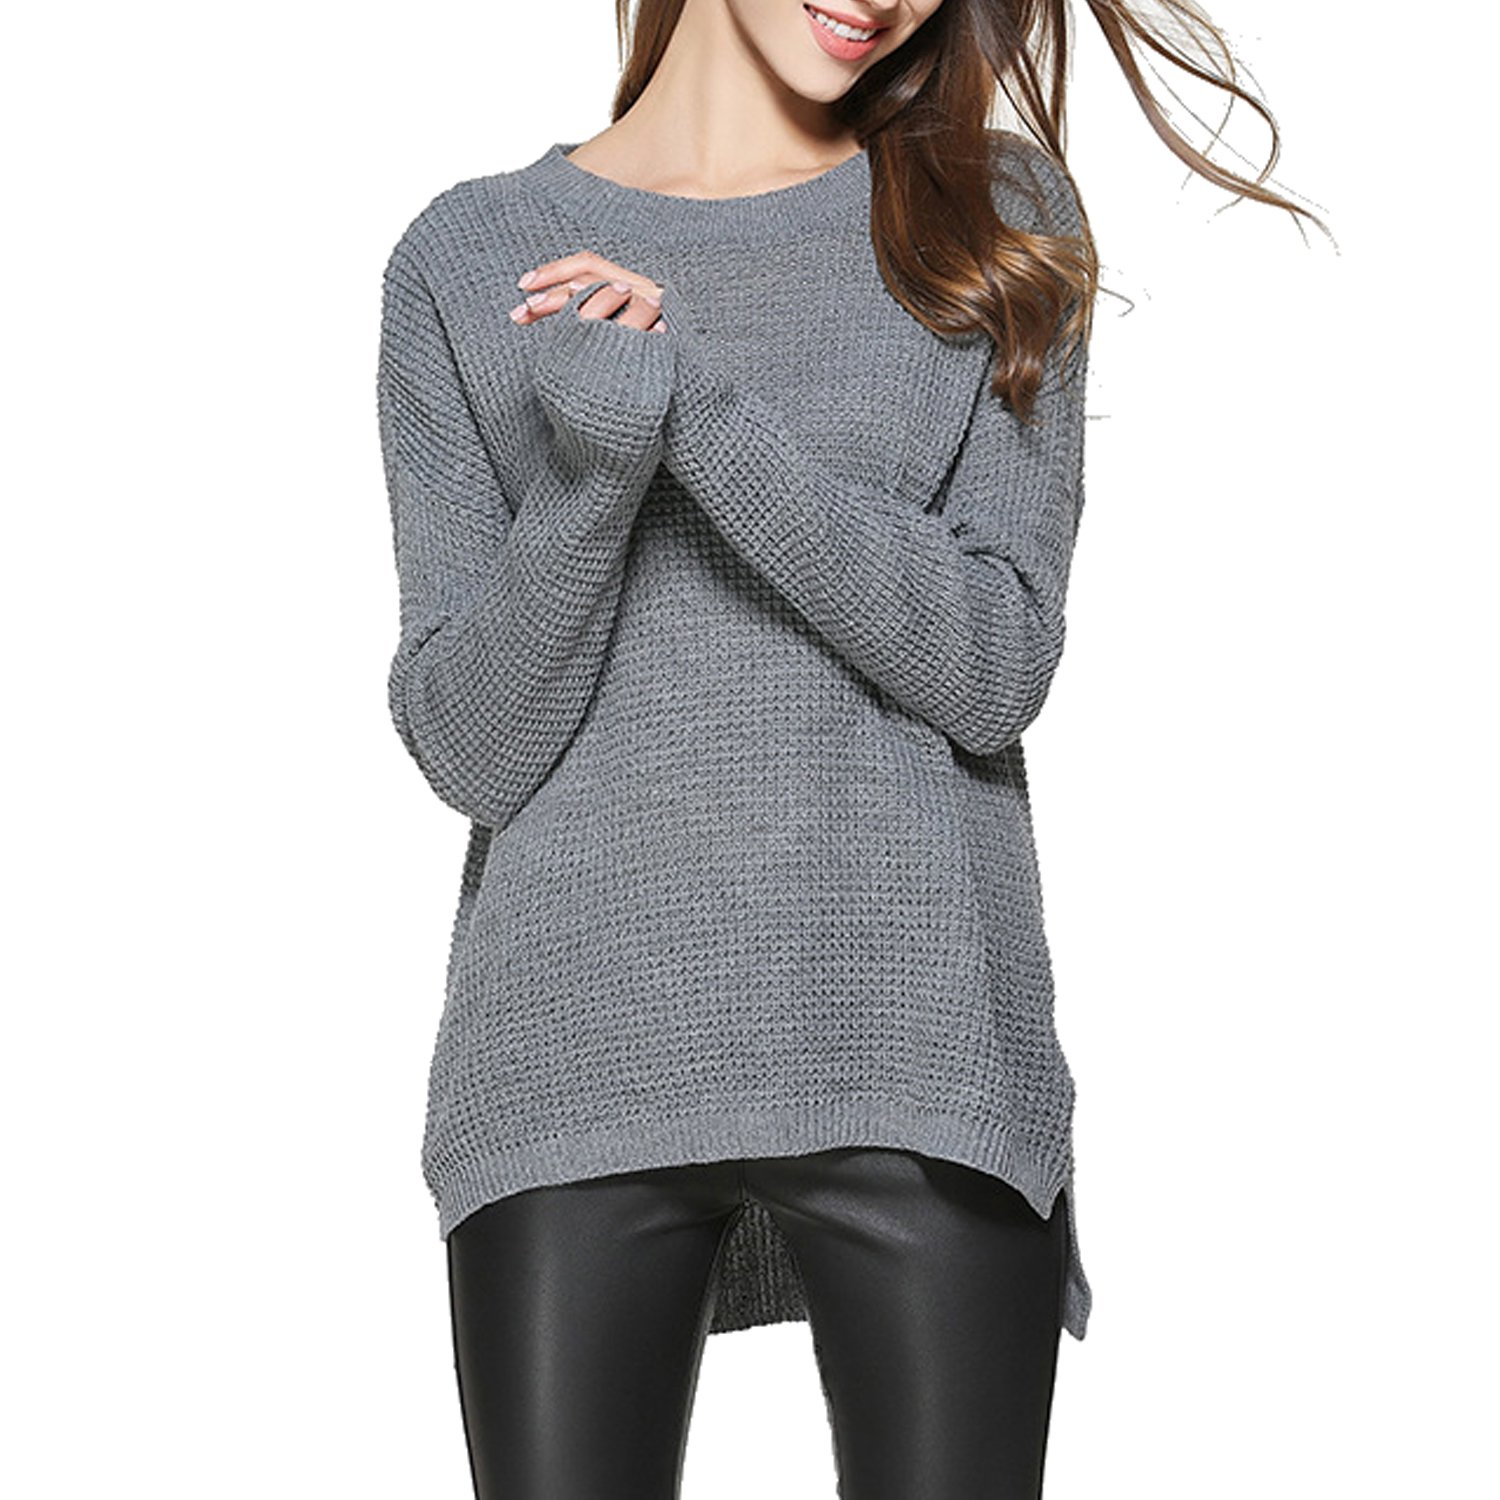 Tulucky Women Fashion Long Sleeve Casual Pullover Knitted Top Sweater (M, Gray)